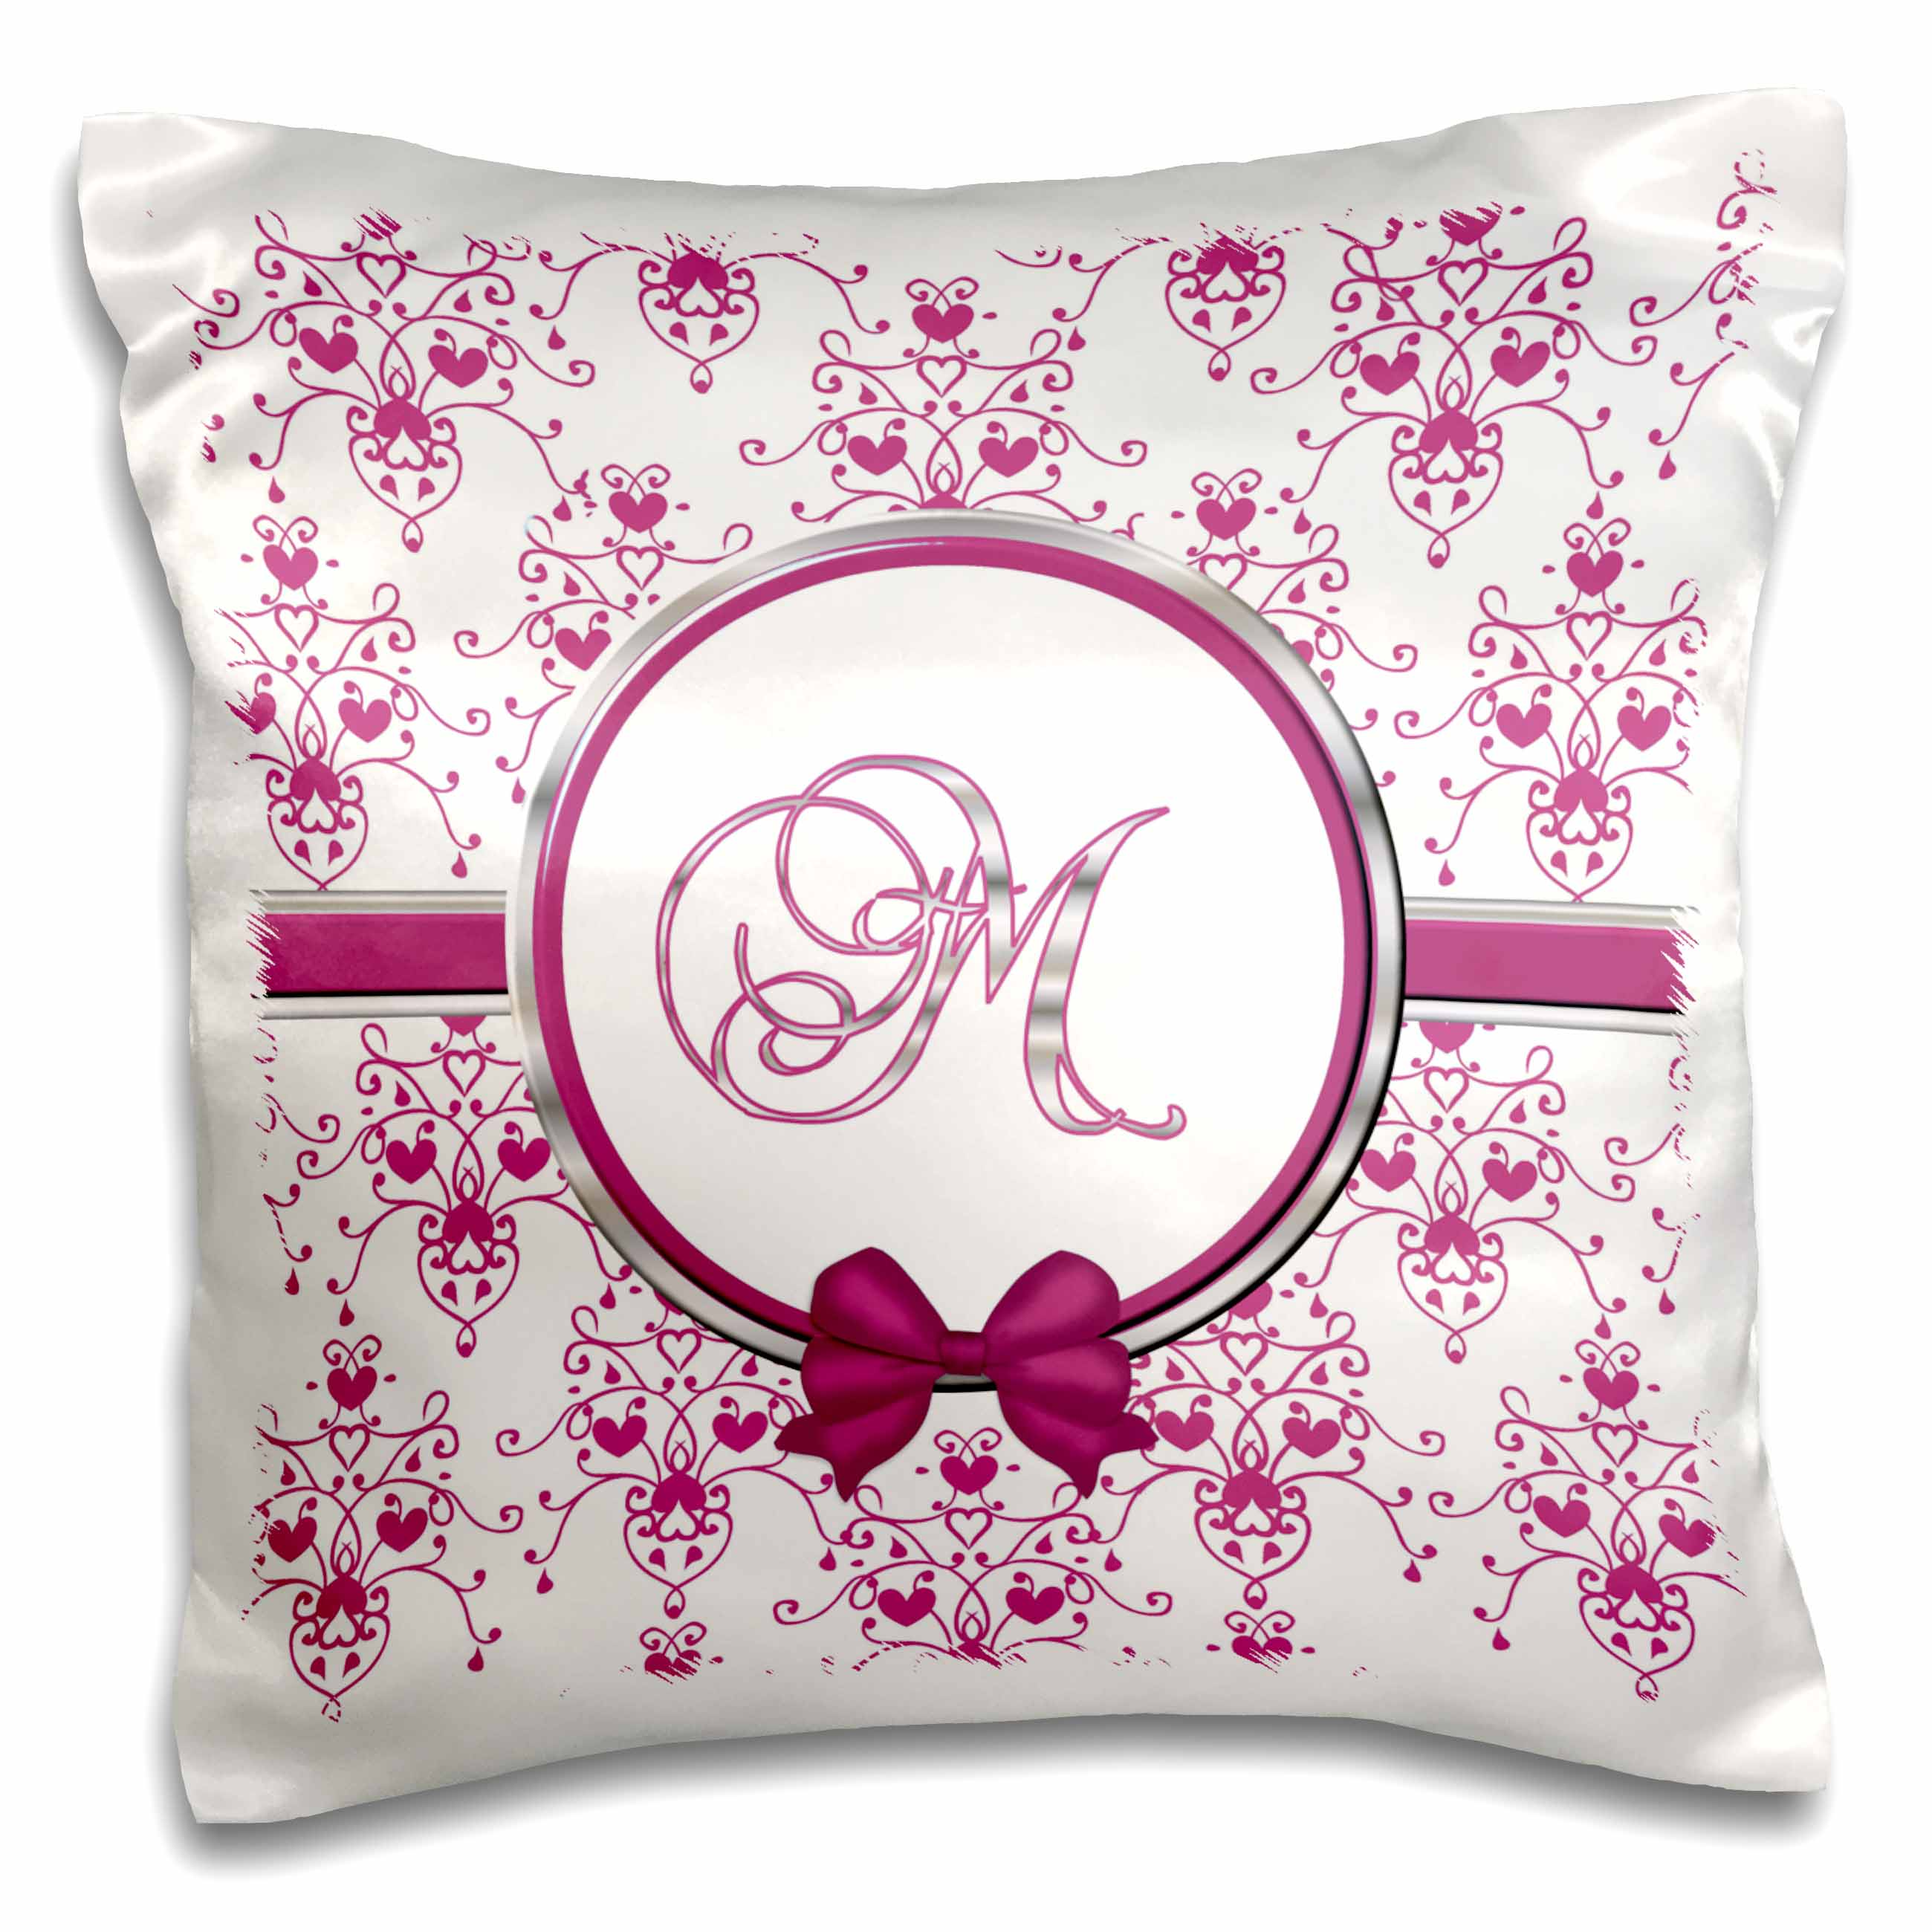 3dRose Elegant Pink and Silver Heart Damask Monogram Letter M, Pillow Case, 16 by 16-inch